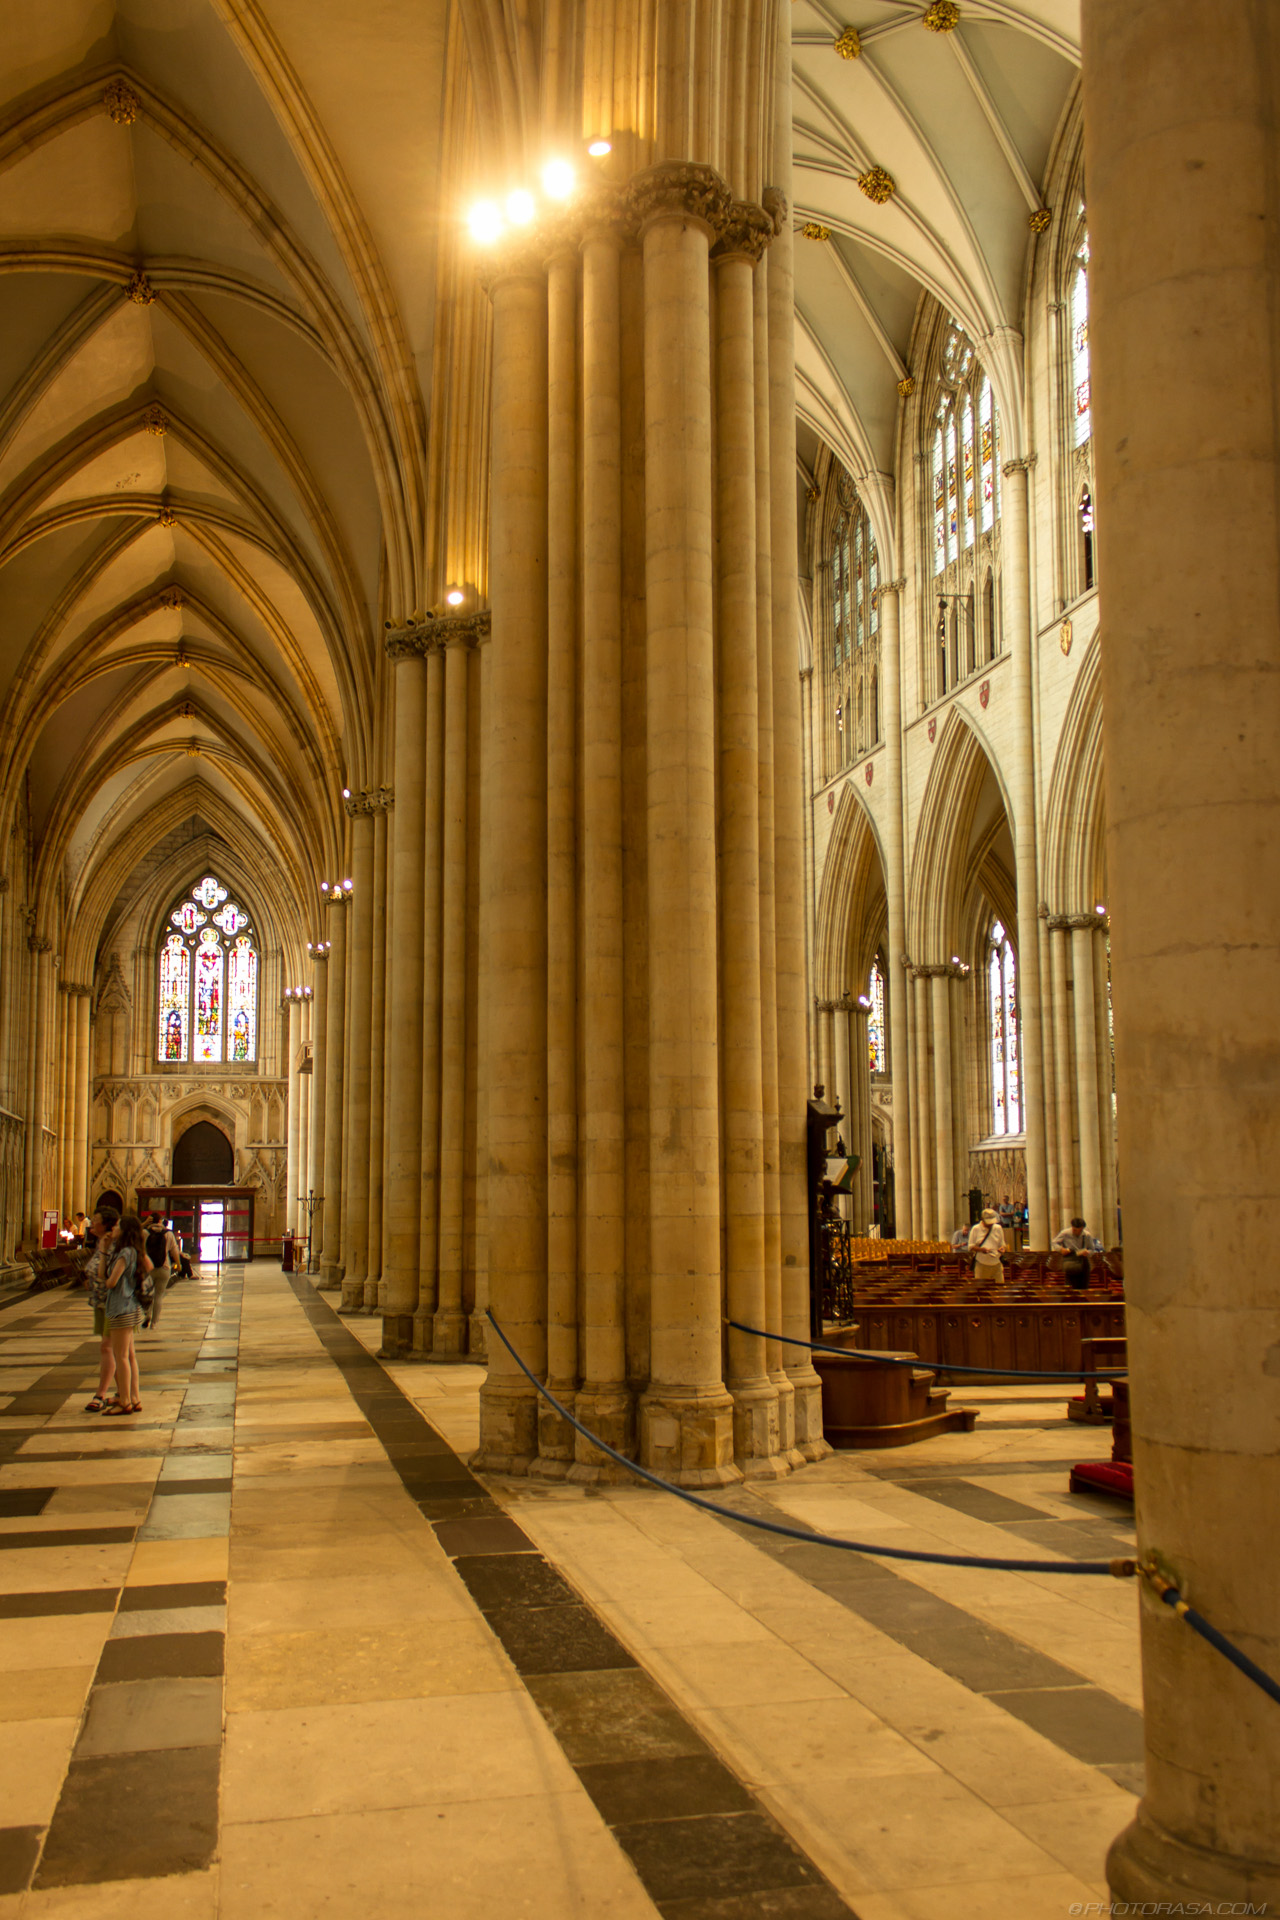 http://photorasa.com/places/yorkminster-cathedral/attachment/great-pillars-of-the-earth/